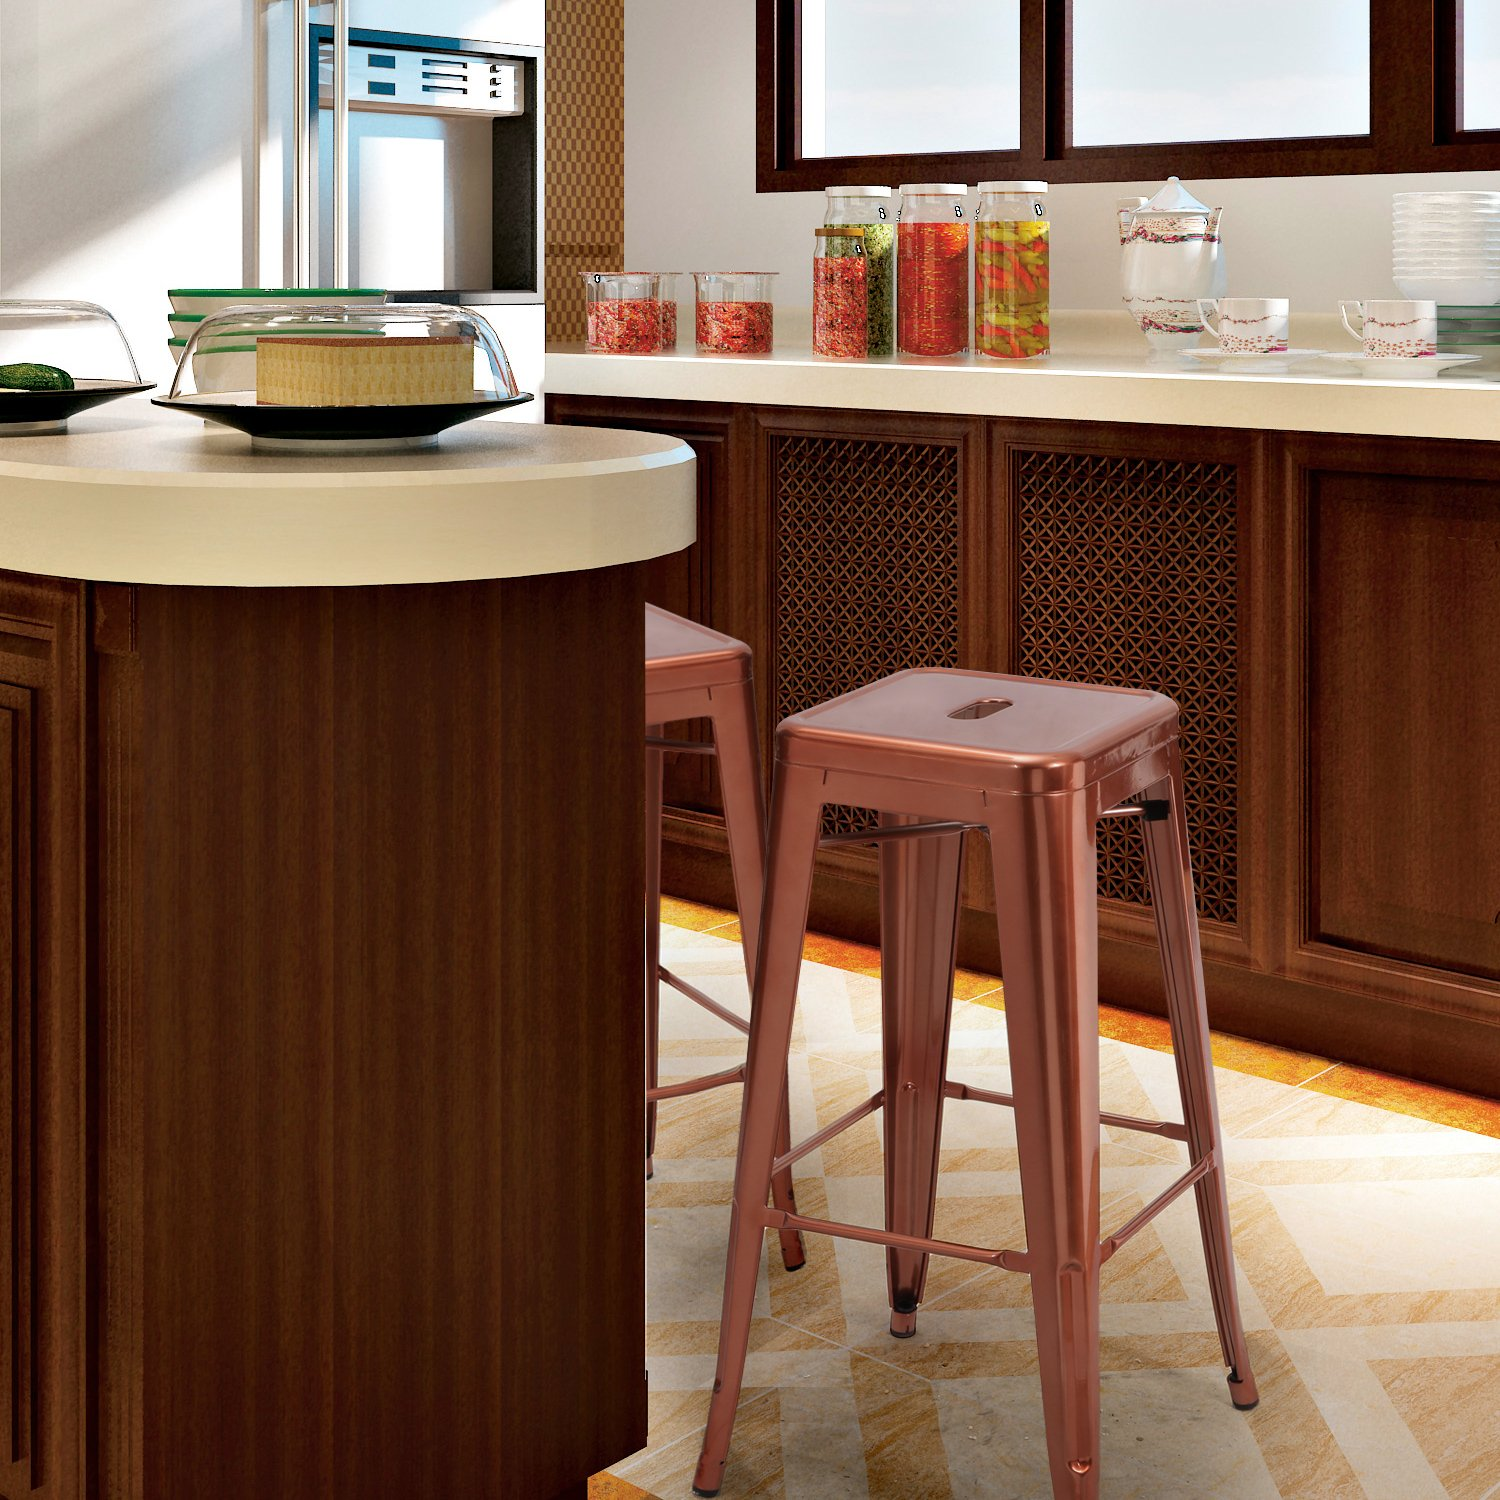 Joveco 24 30 Inches Sheet Metal Frame Tolix Style Bar Stool – Set of 2 30 Inches Brown